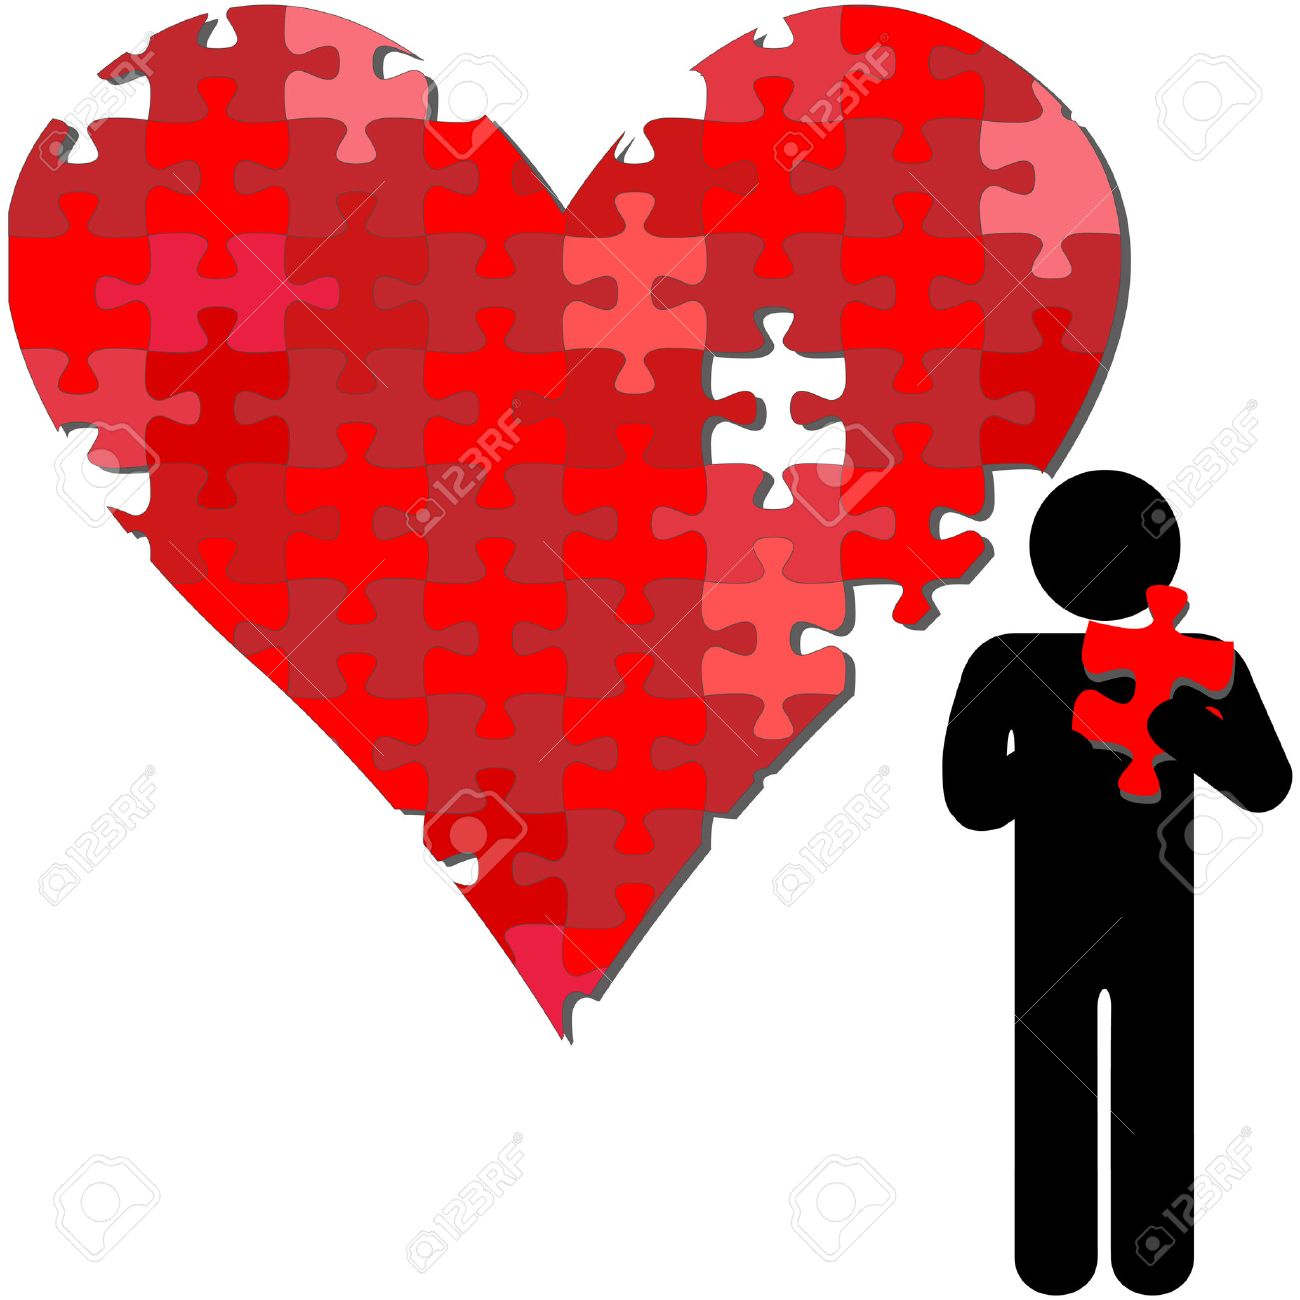 A valentine heart missing a piece held in the arms of a symbol person. Stock Vector - 5571019